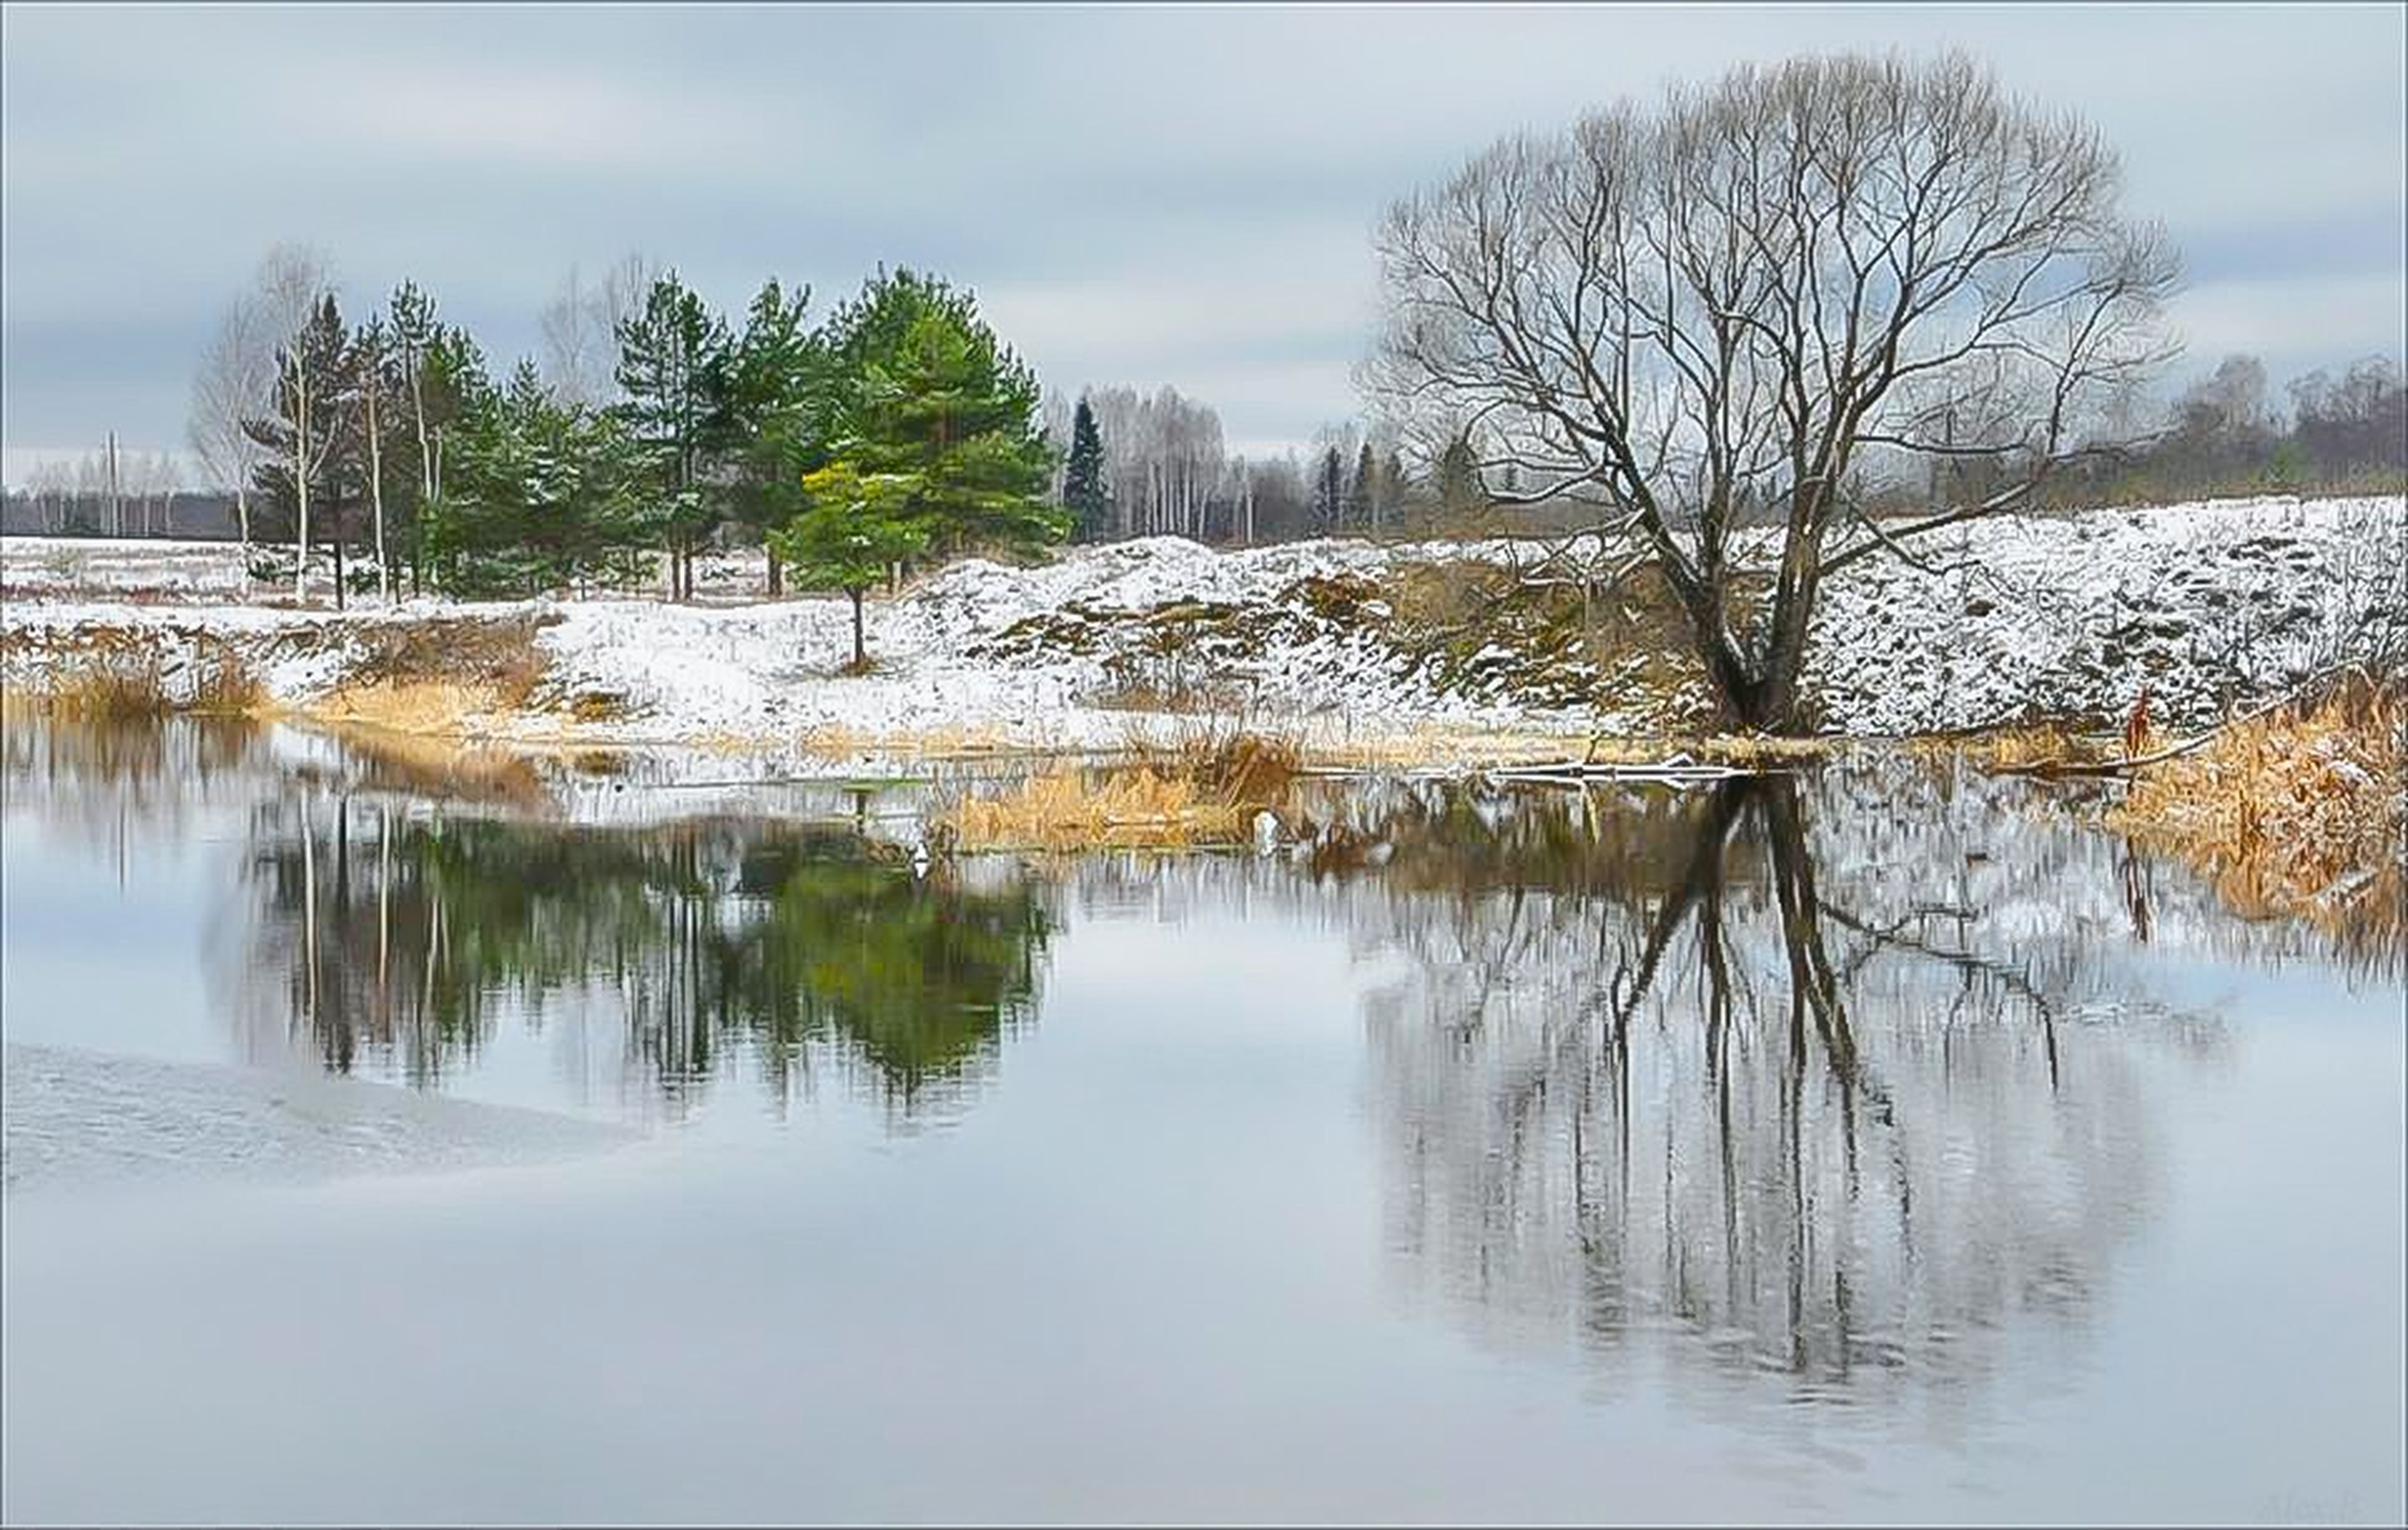 water, lake, tree, reflection, tranquil scene, tranquility, bare tree, sky, scenics, beauty in nature, waterfront, nature, winter, cold temperature, snow, season, standing water, branch, cloud - sky, weather